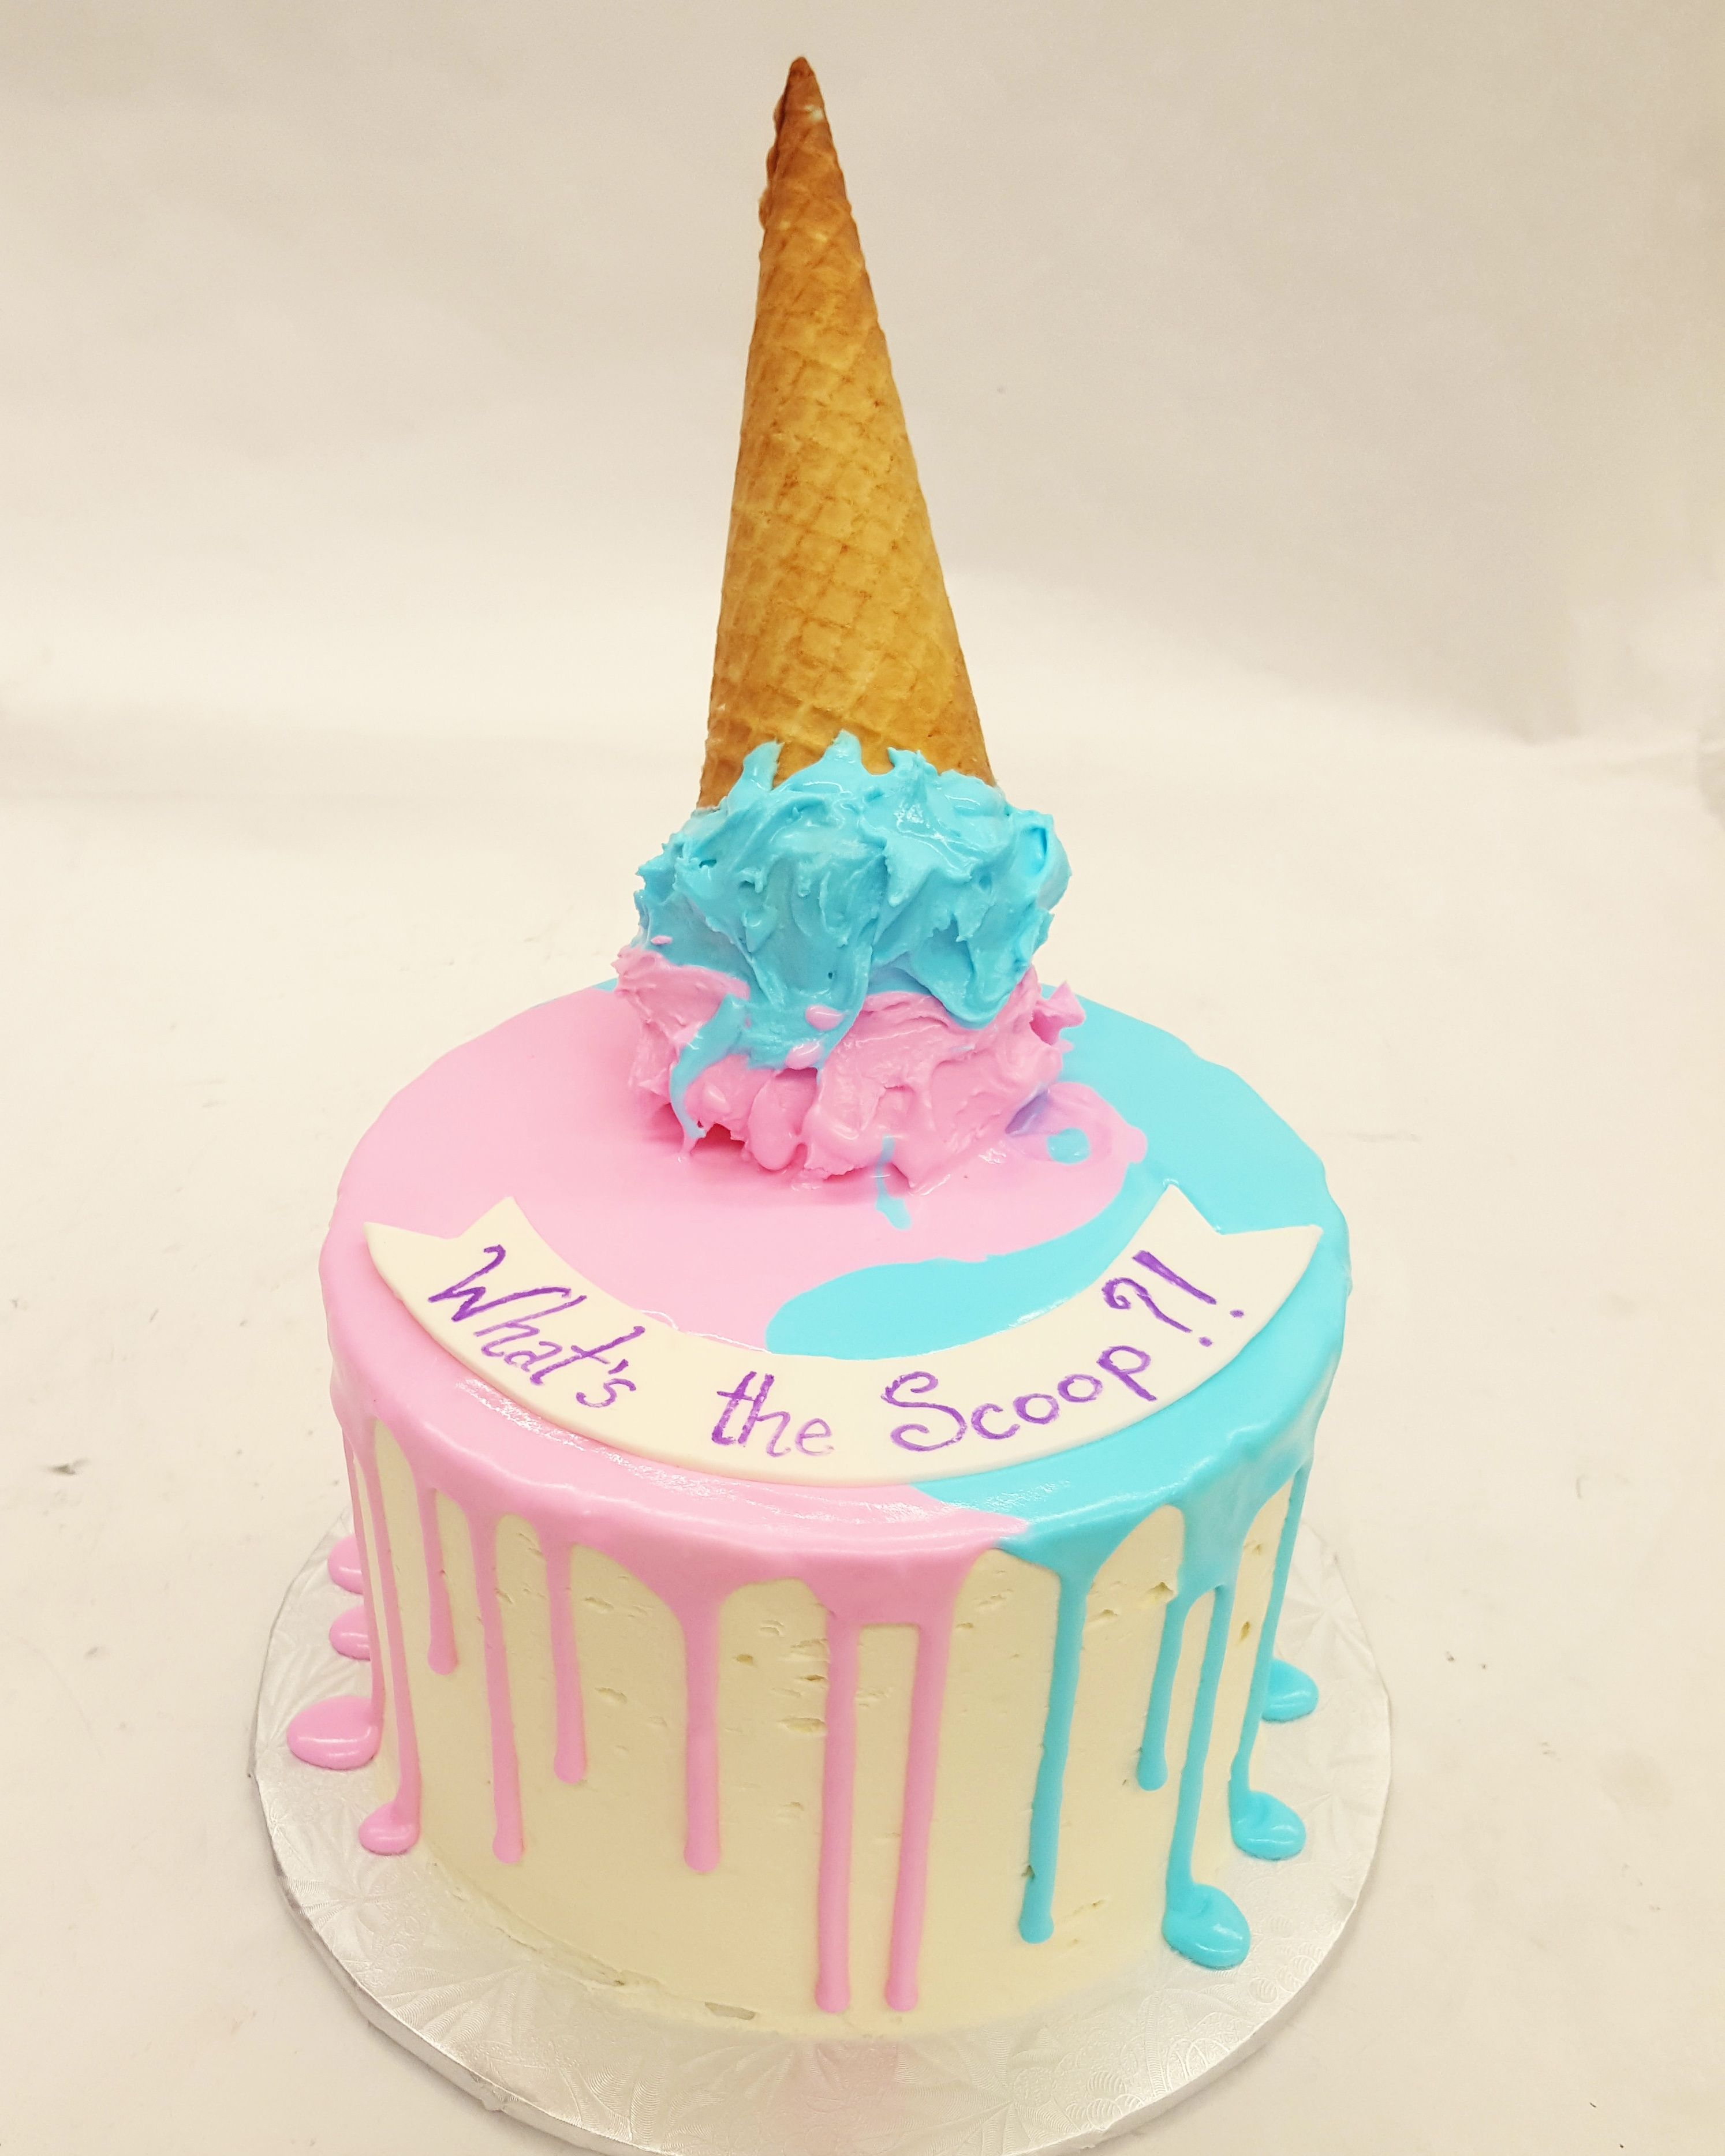 210 What S The Scoop Gender Reveal Baby Shower Ideas Gender Reveal Baby Shower Gender Reveal Baby Shower